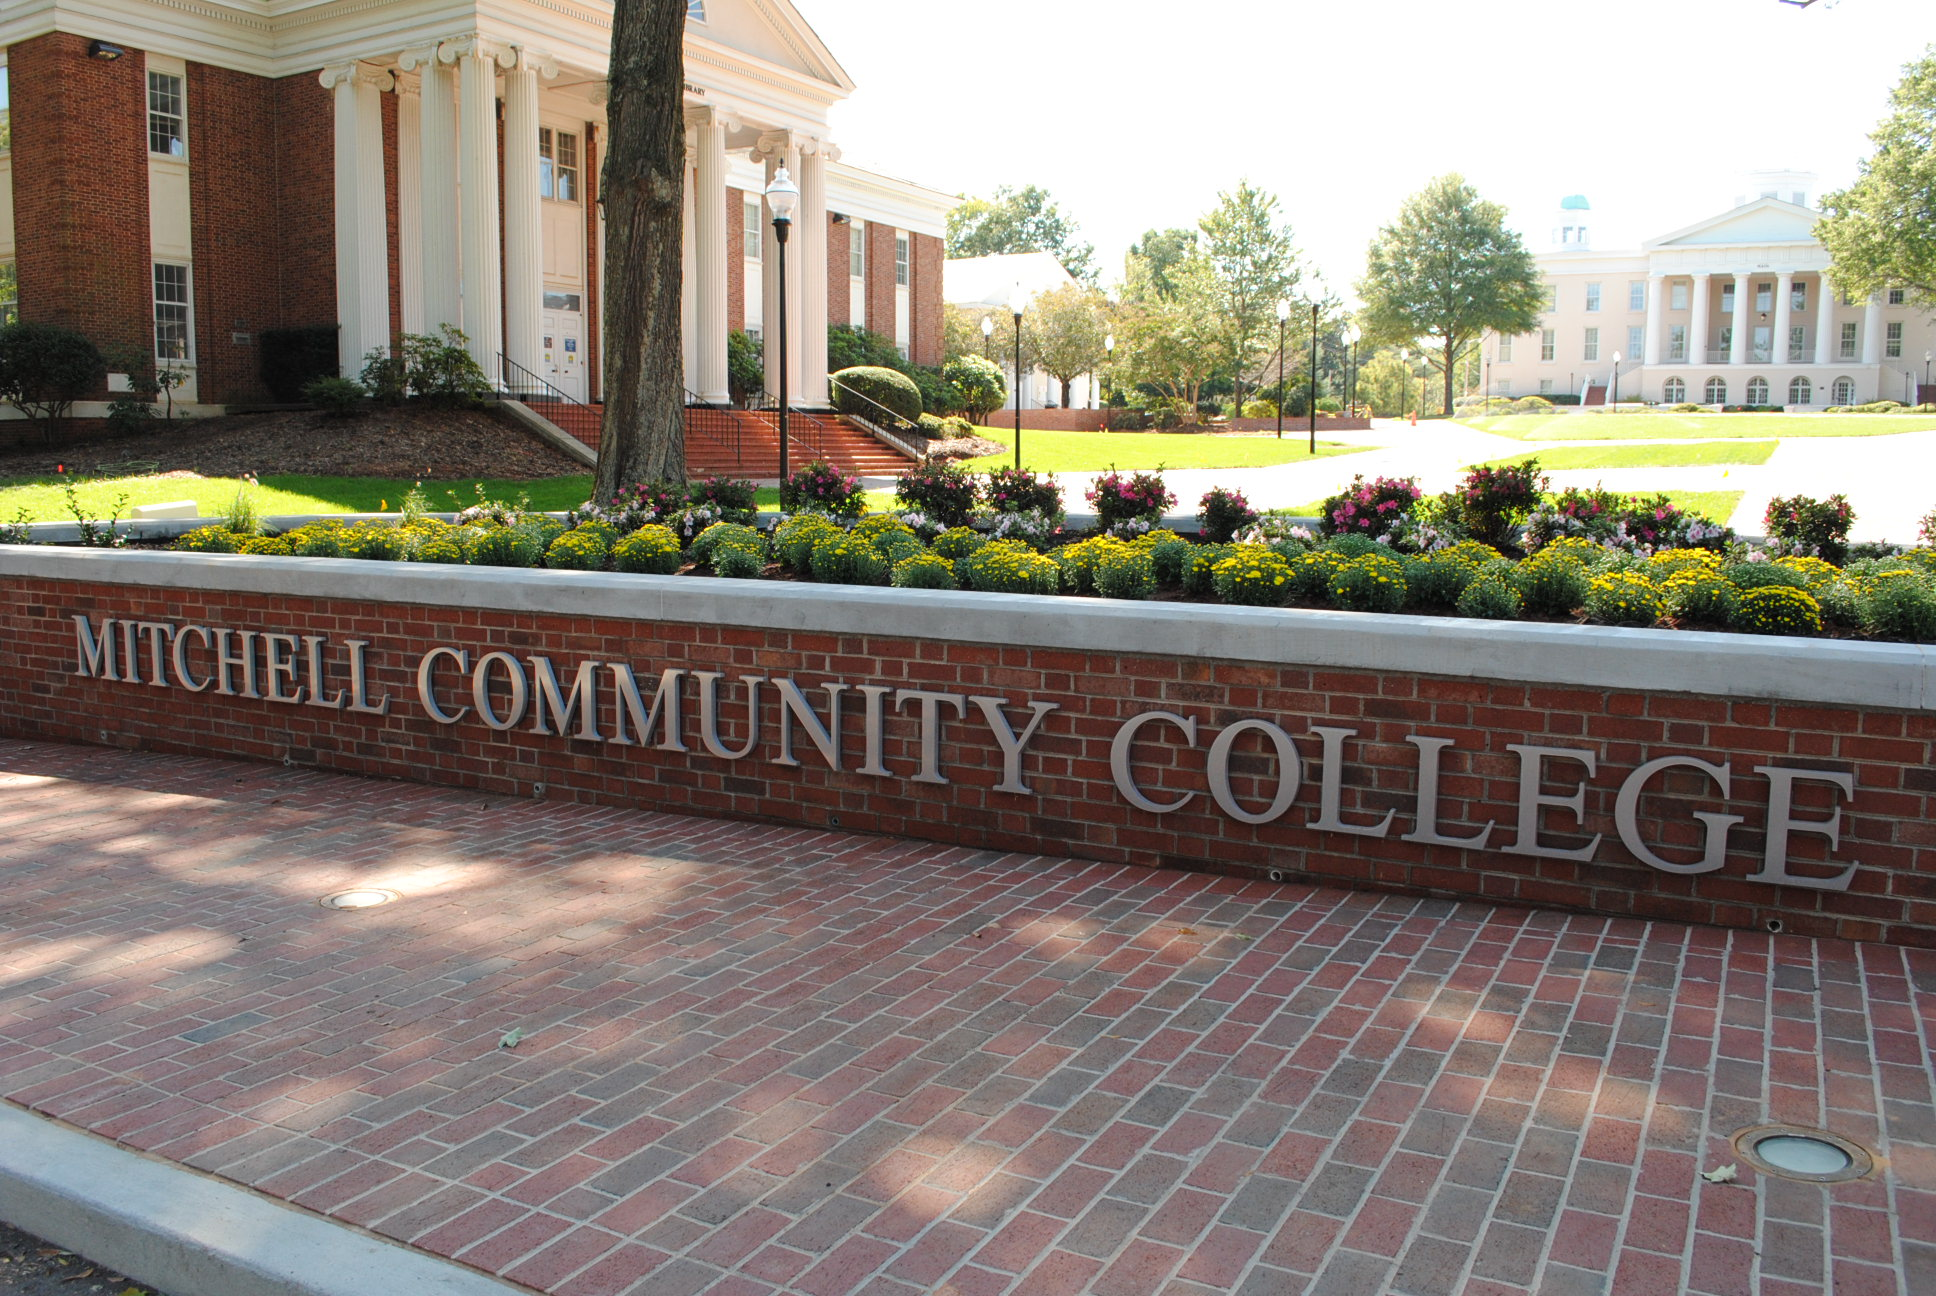 The front sign on Mitchell Community College's historic Statesville Campus